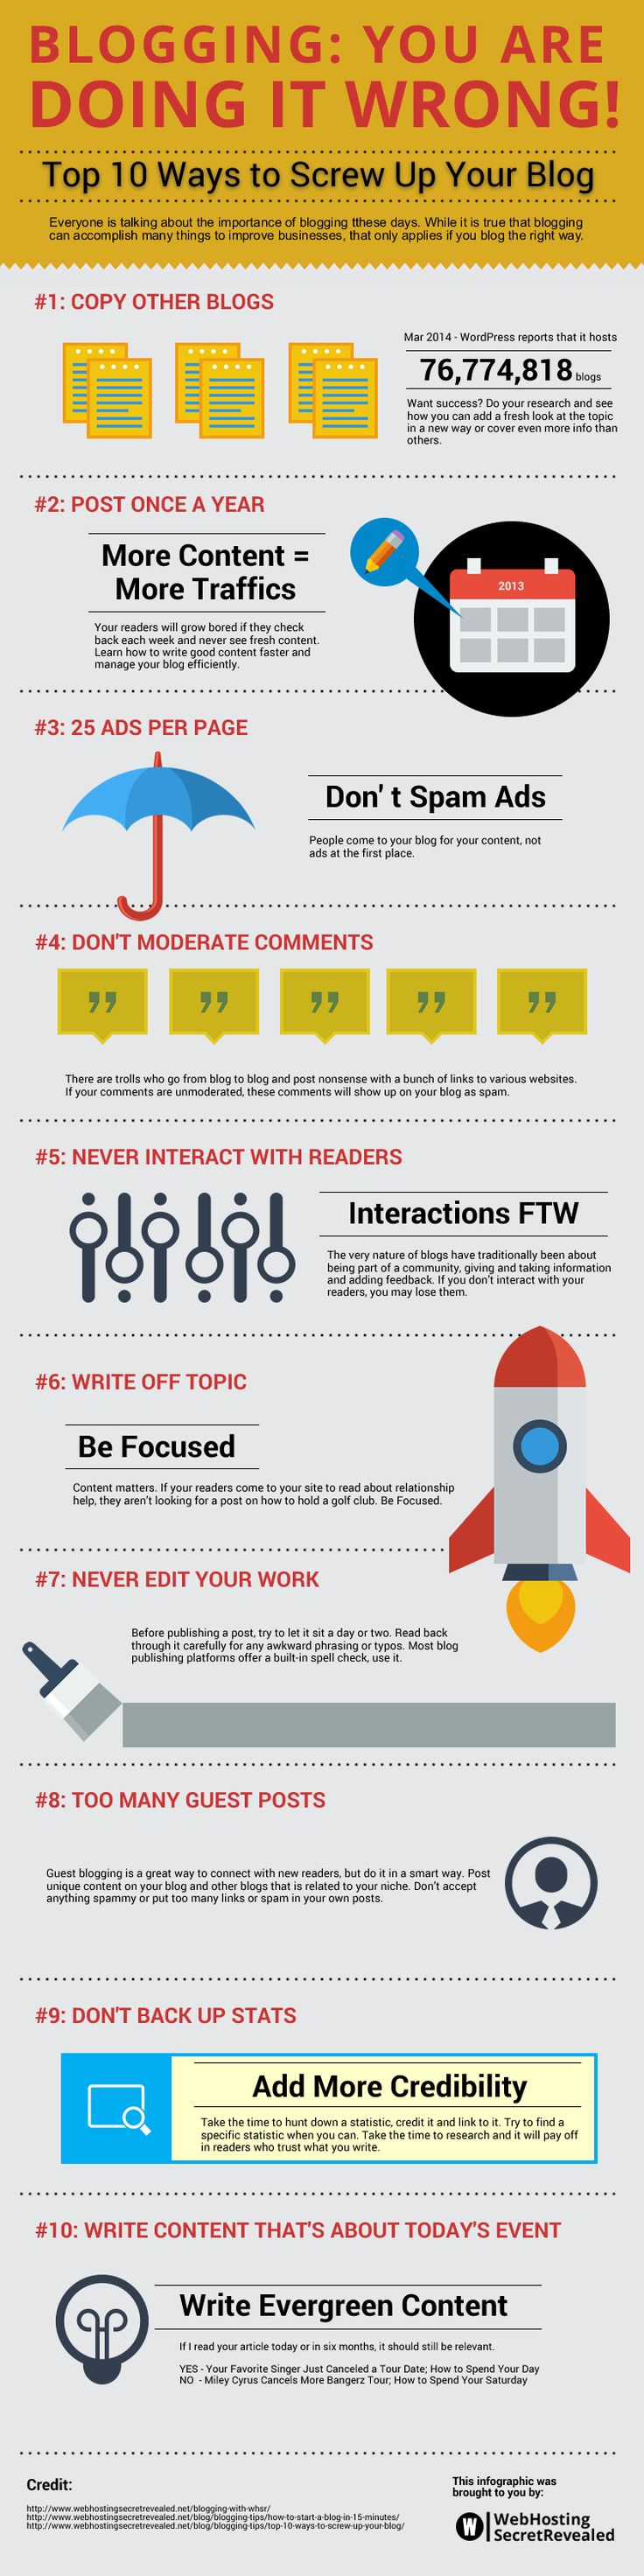 10 #Blogging Mistakes to Avoid - #Infographic